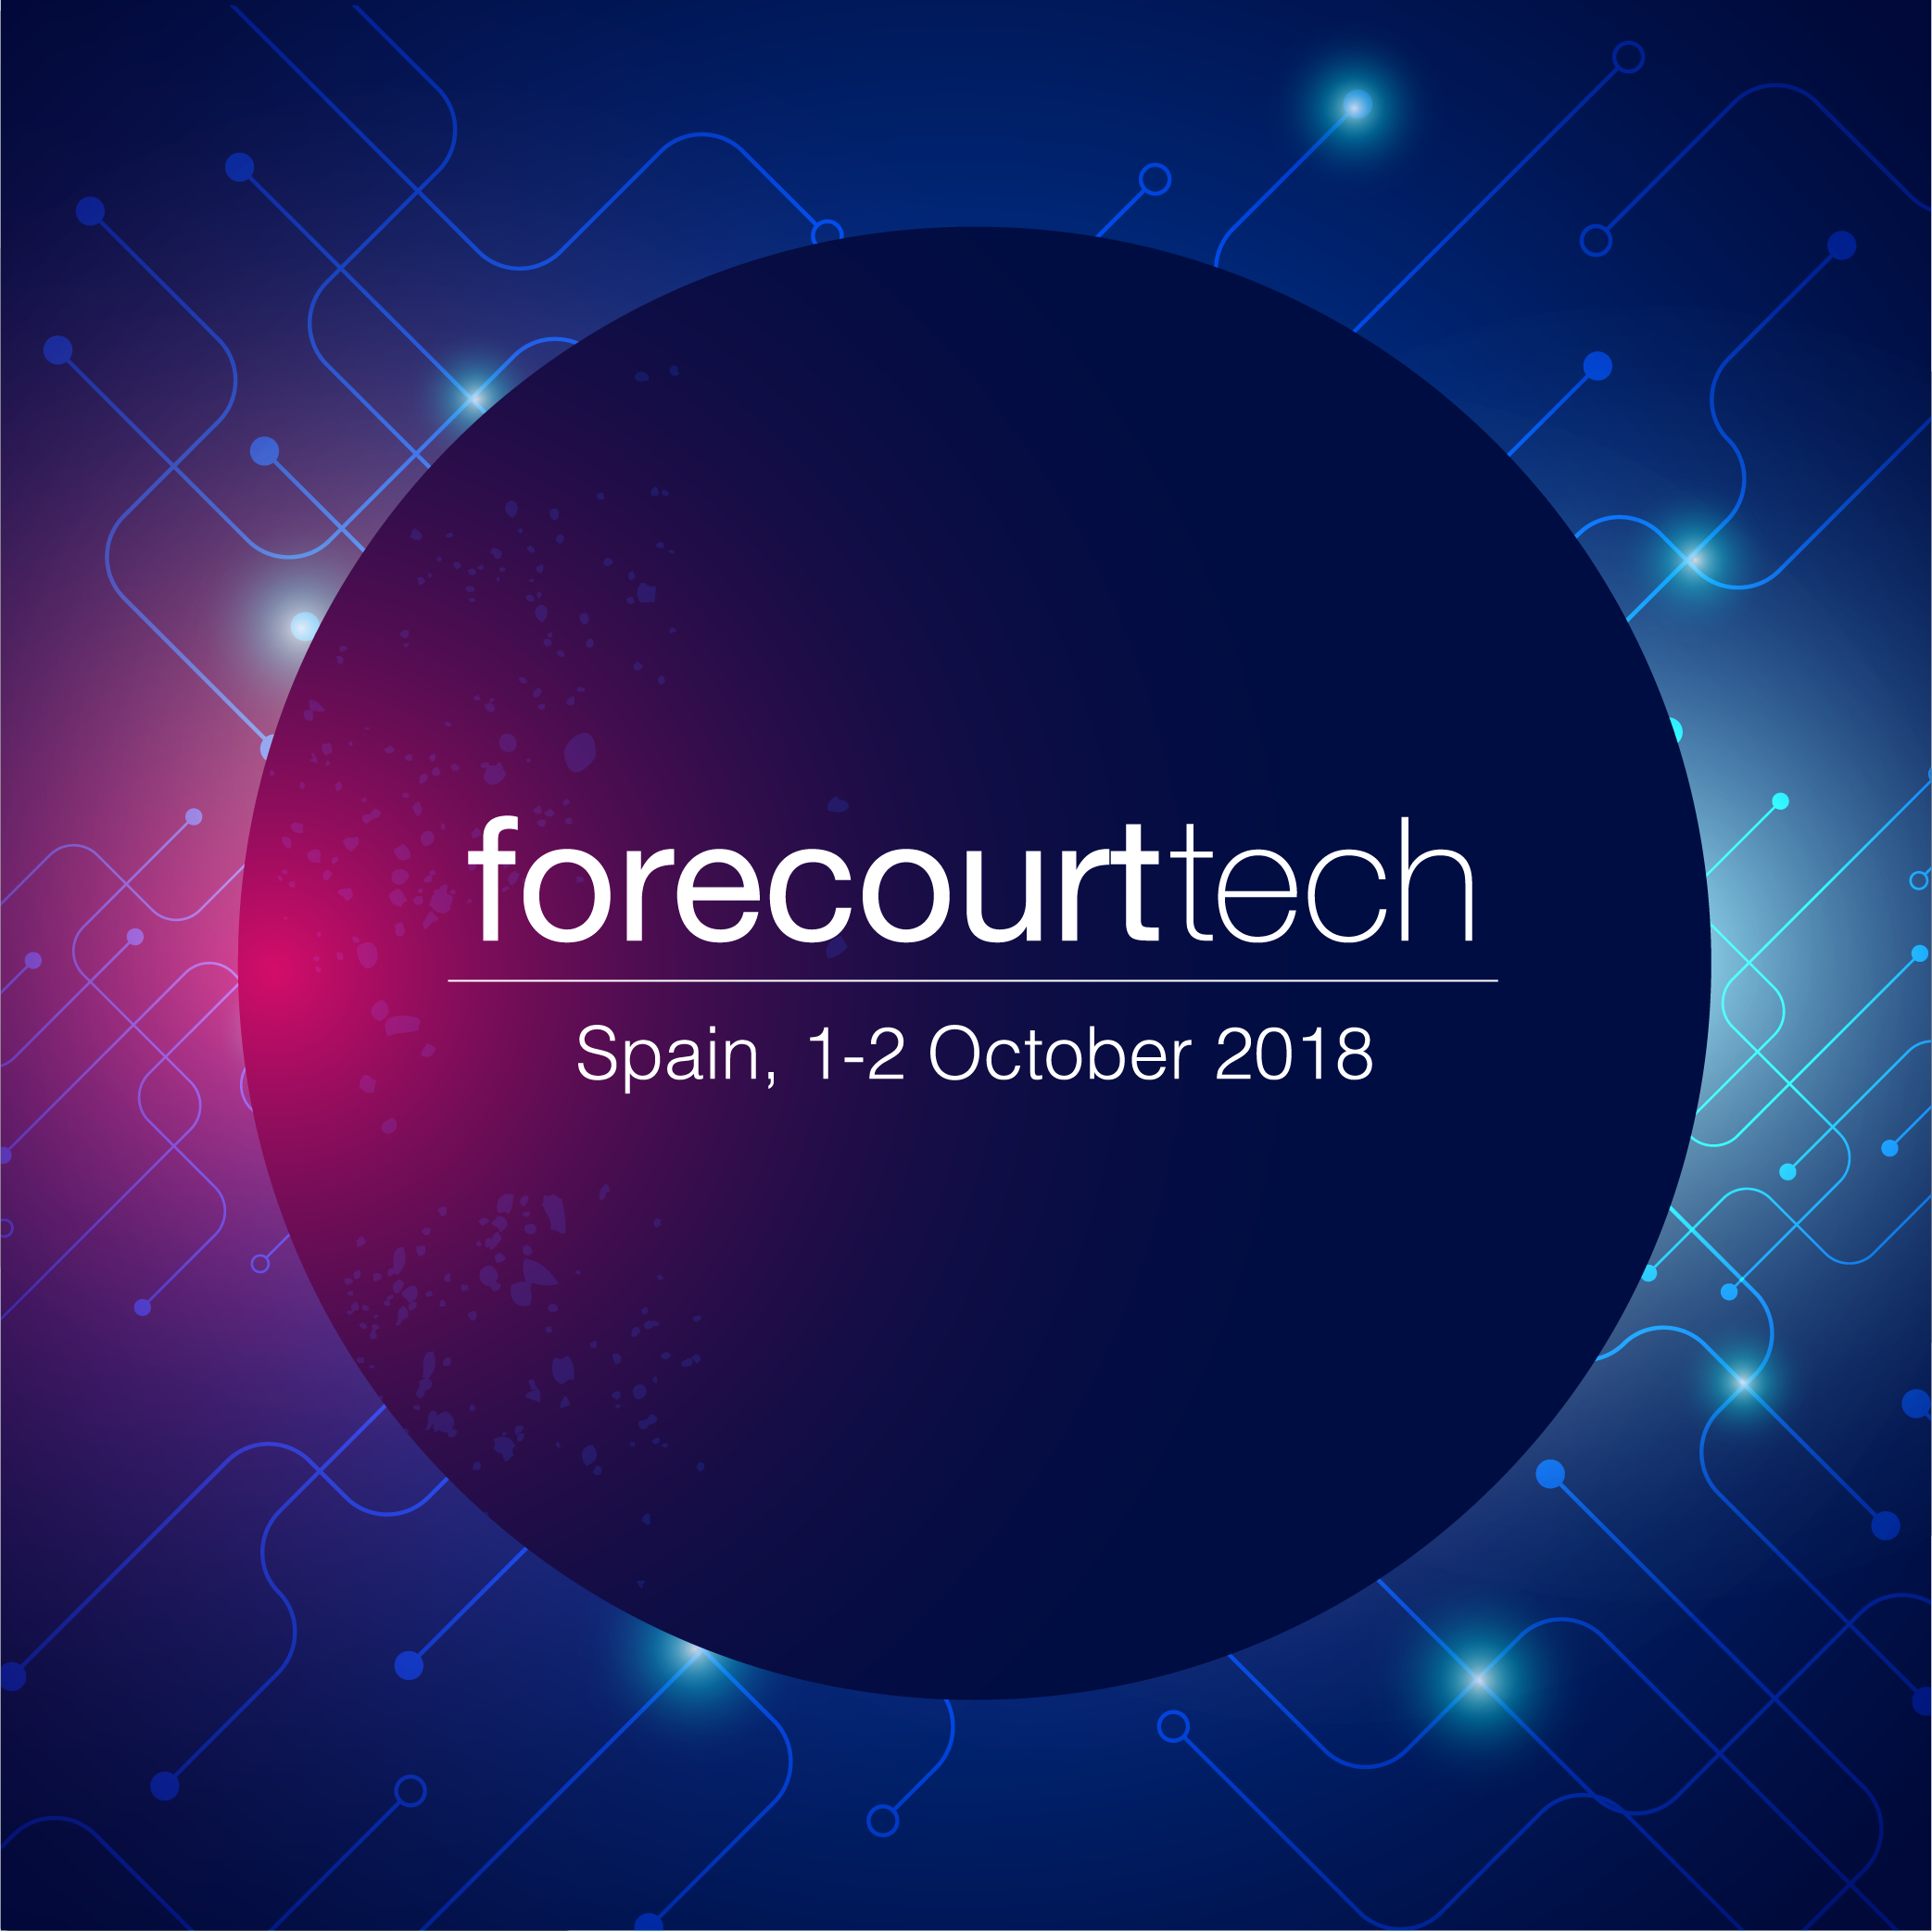 forecourtech 2018, SPA Supporting Organization and Speaking